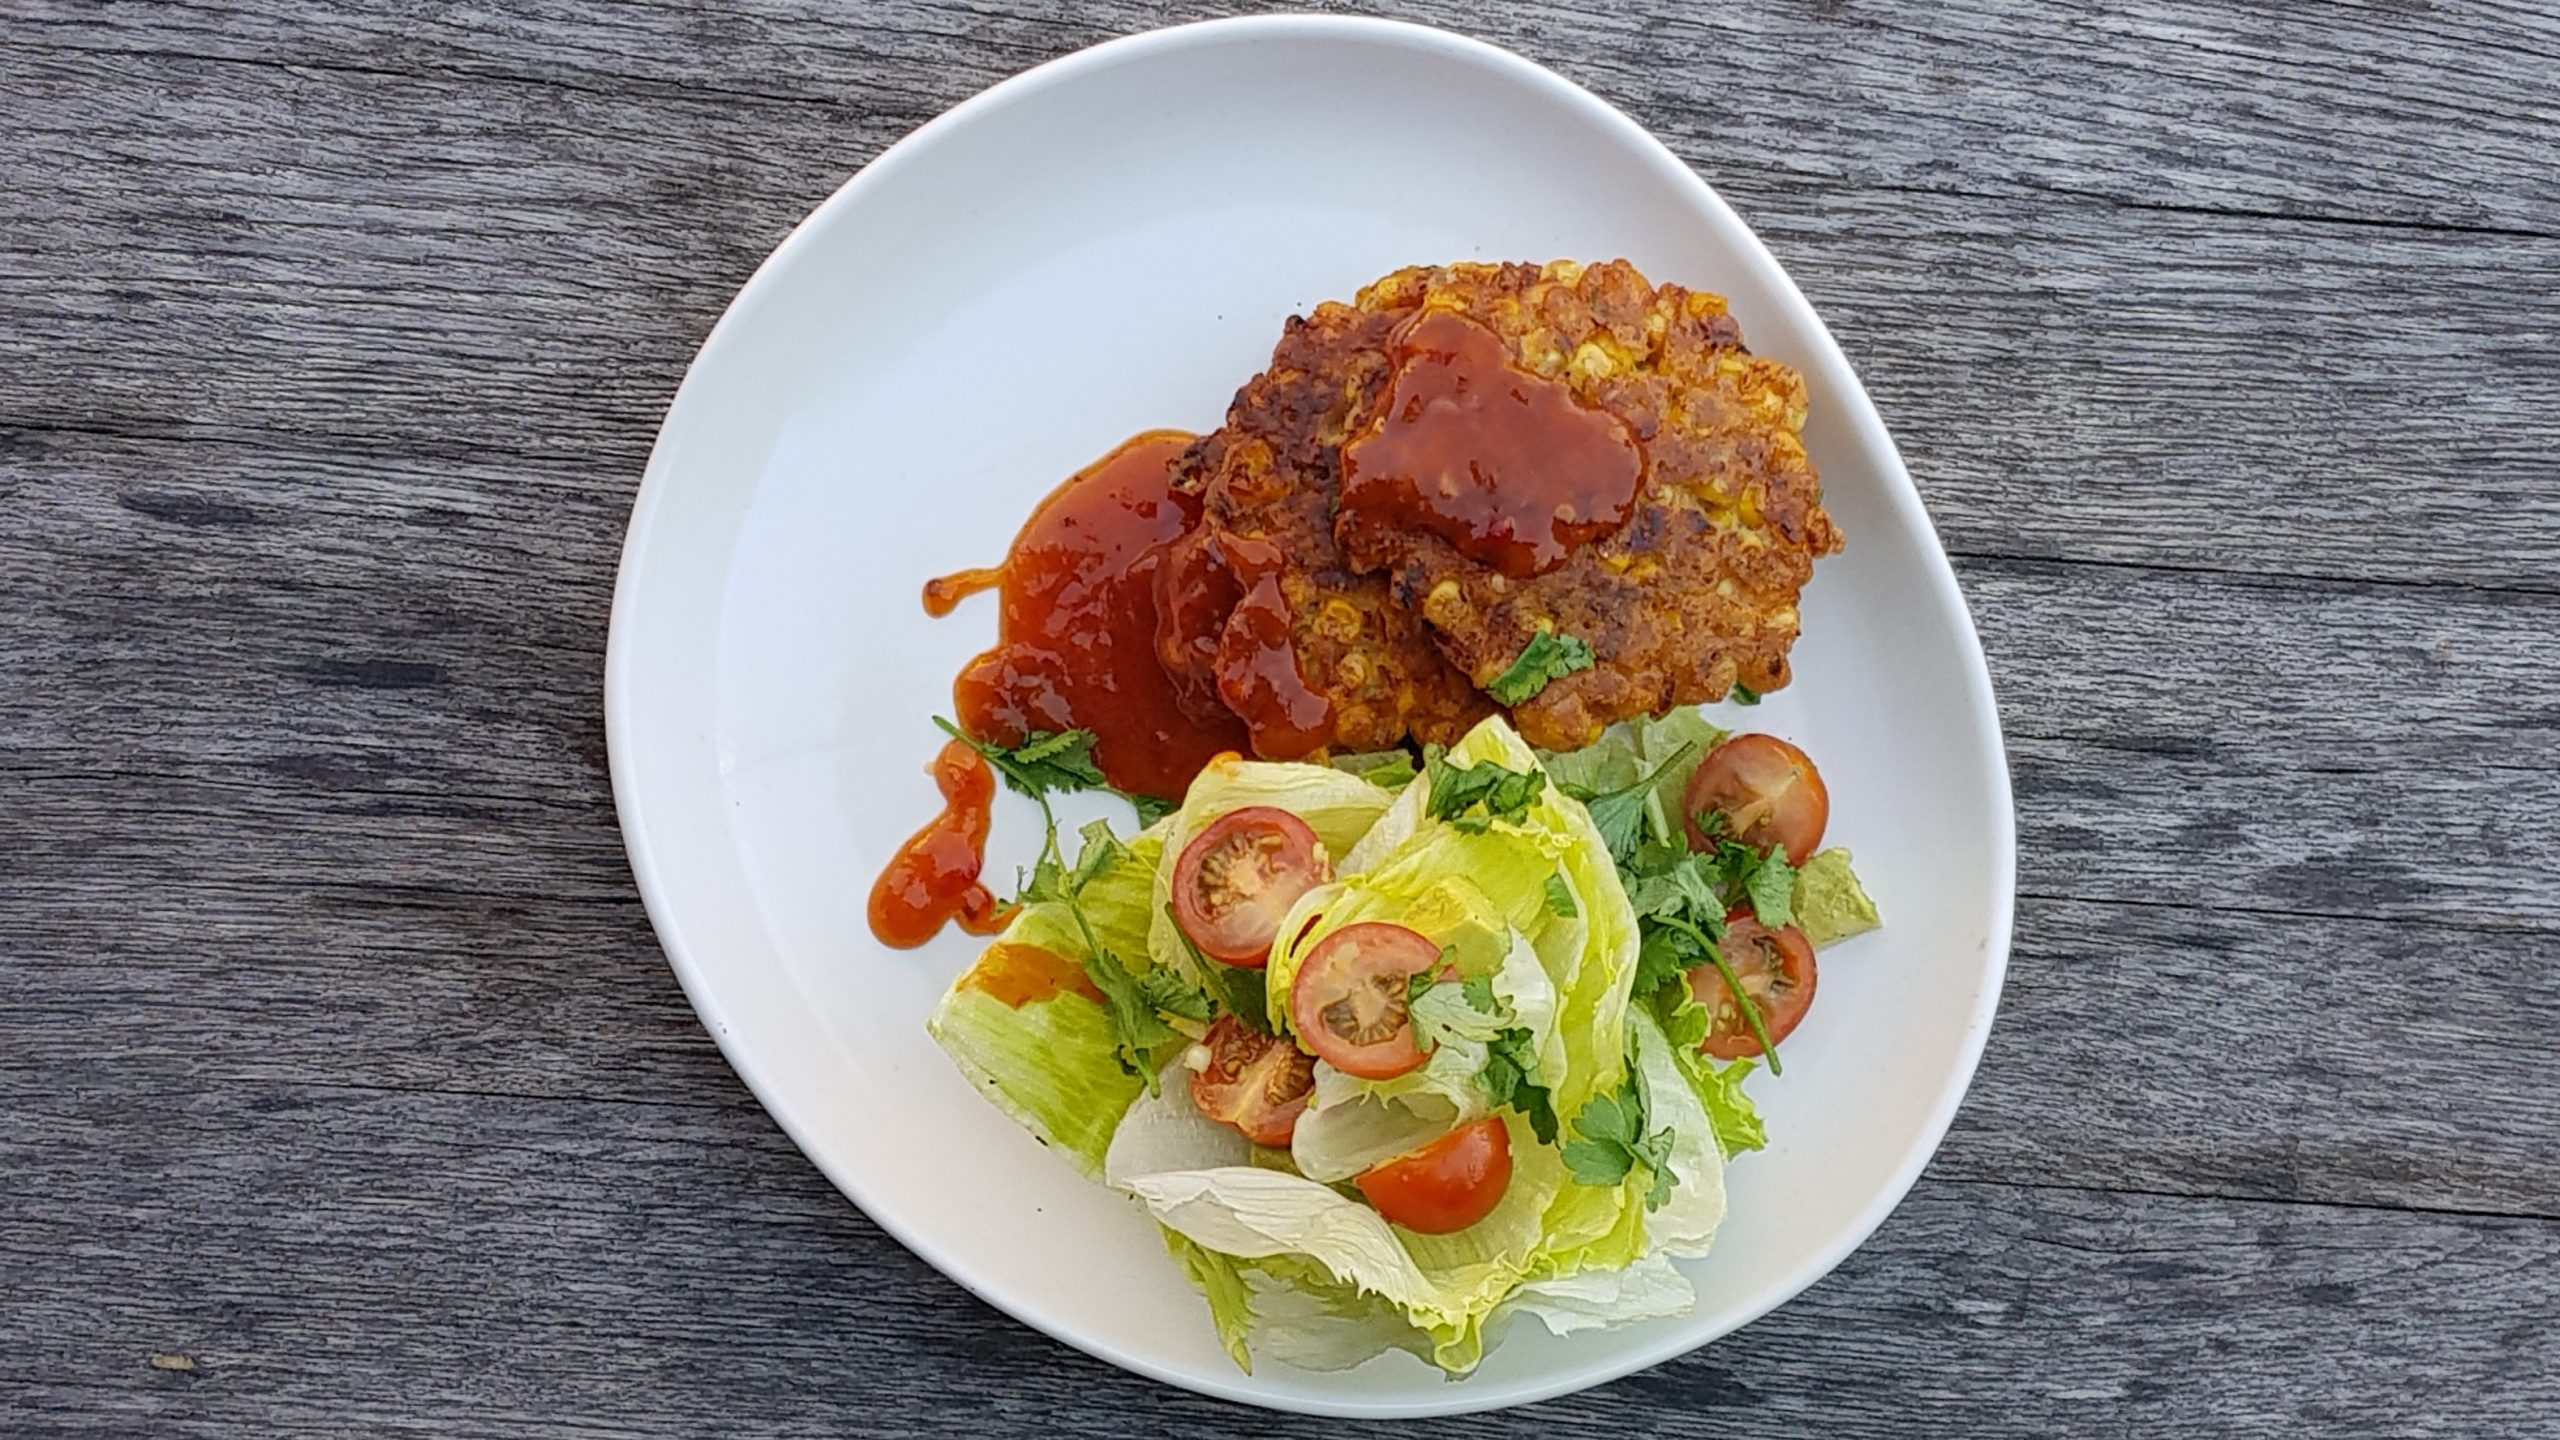 Corn fritters with sweet chili, wedge salad and cumin lime dressing